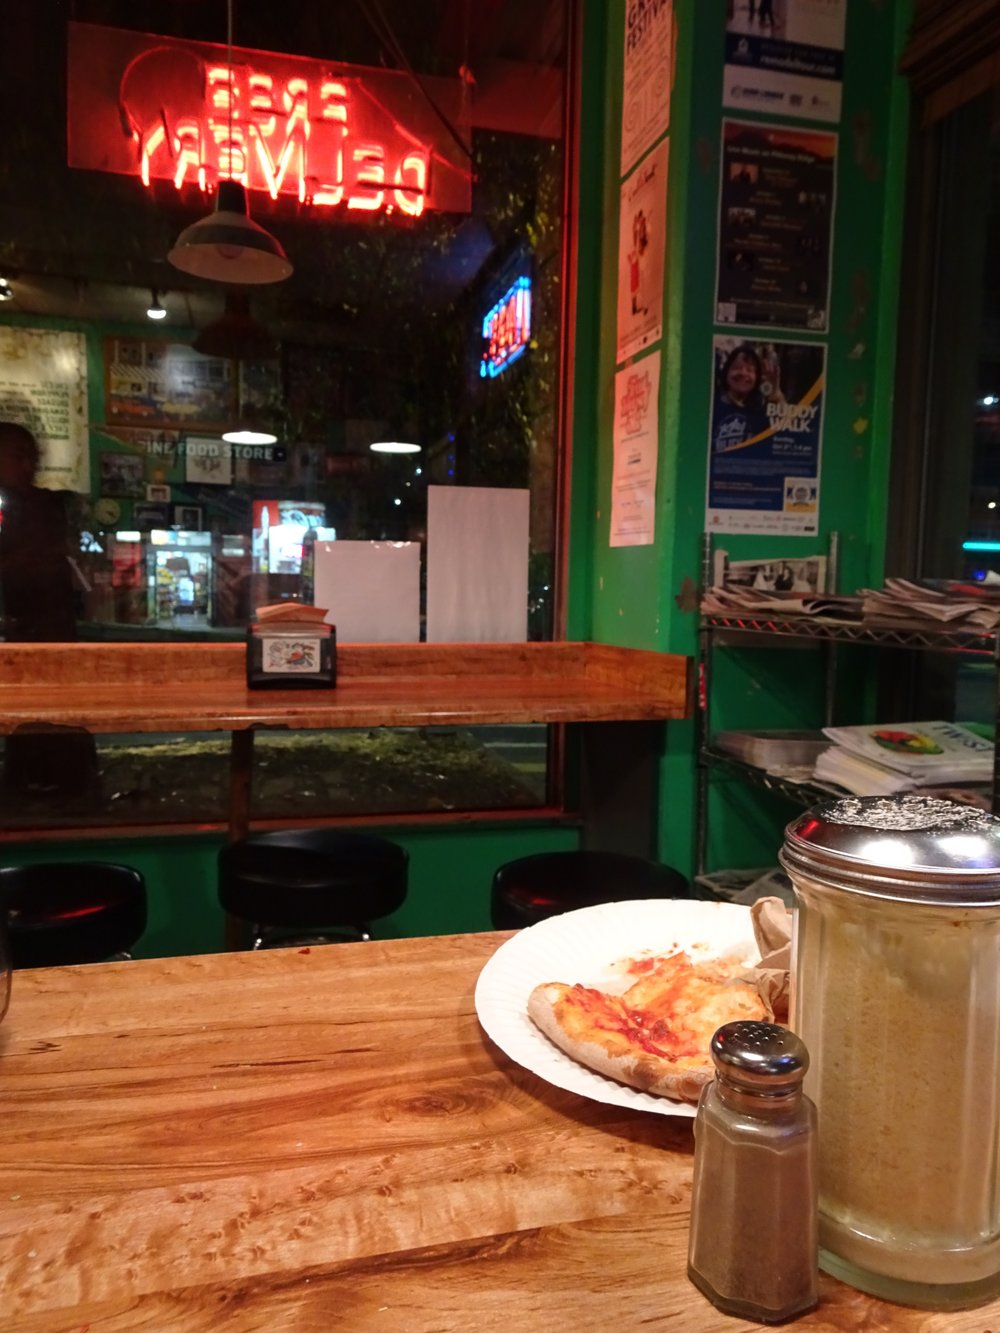 hot mama's pizza, seattle, washington - m.quigley